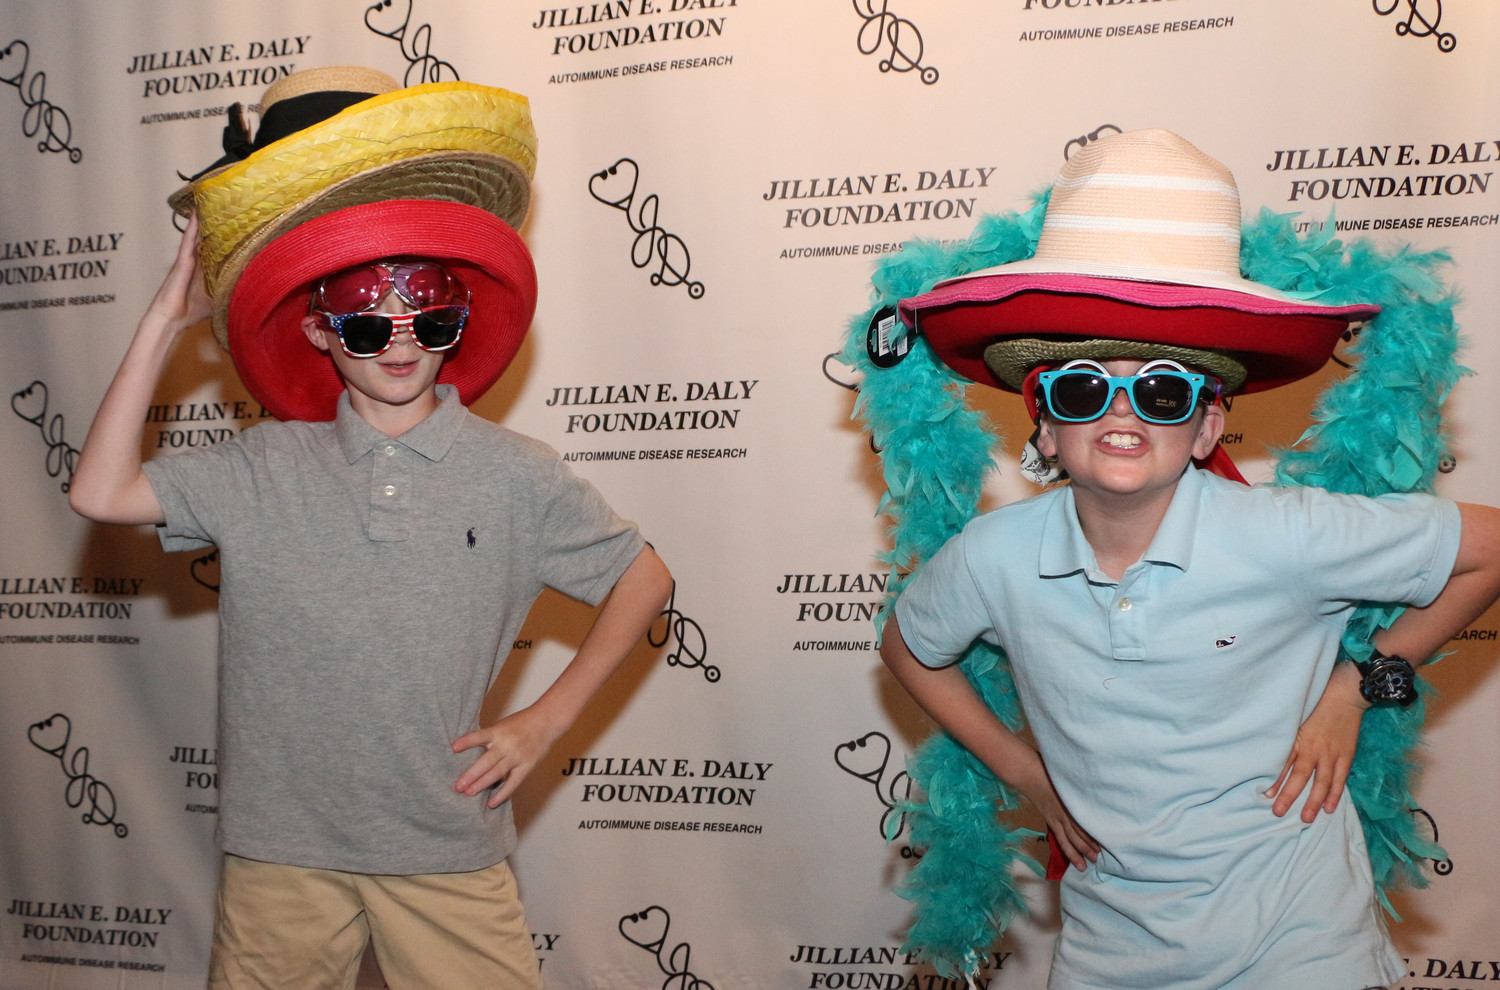 Justin Cawlfield, 11, left, and Finn Sweeney, 11, joined in on the fun.